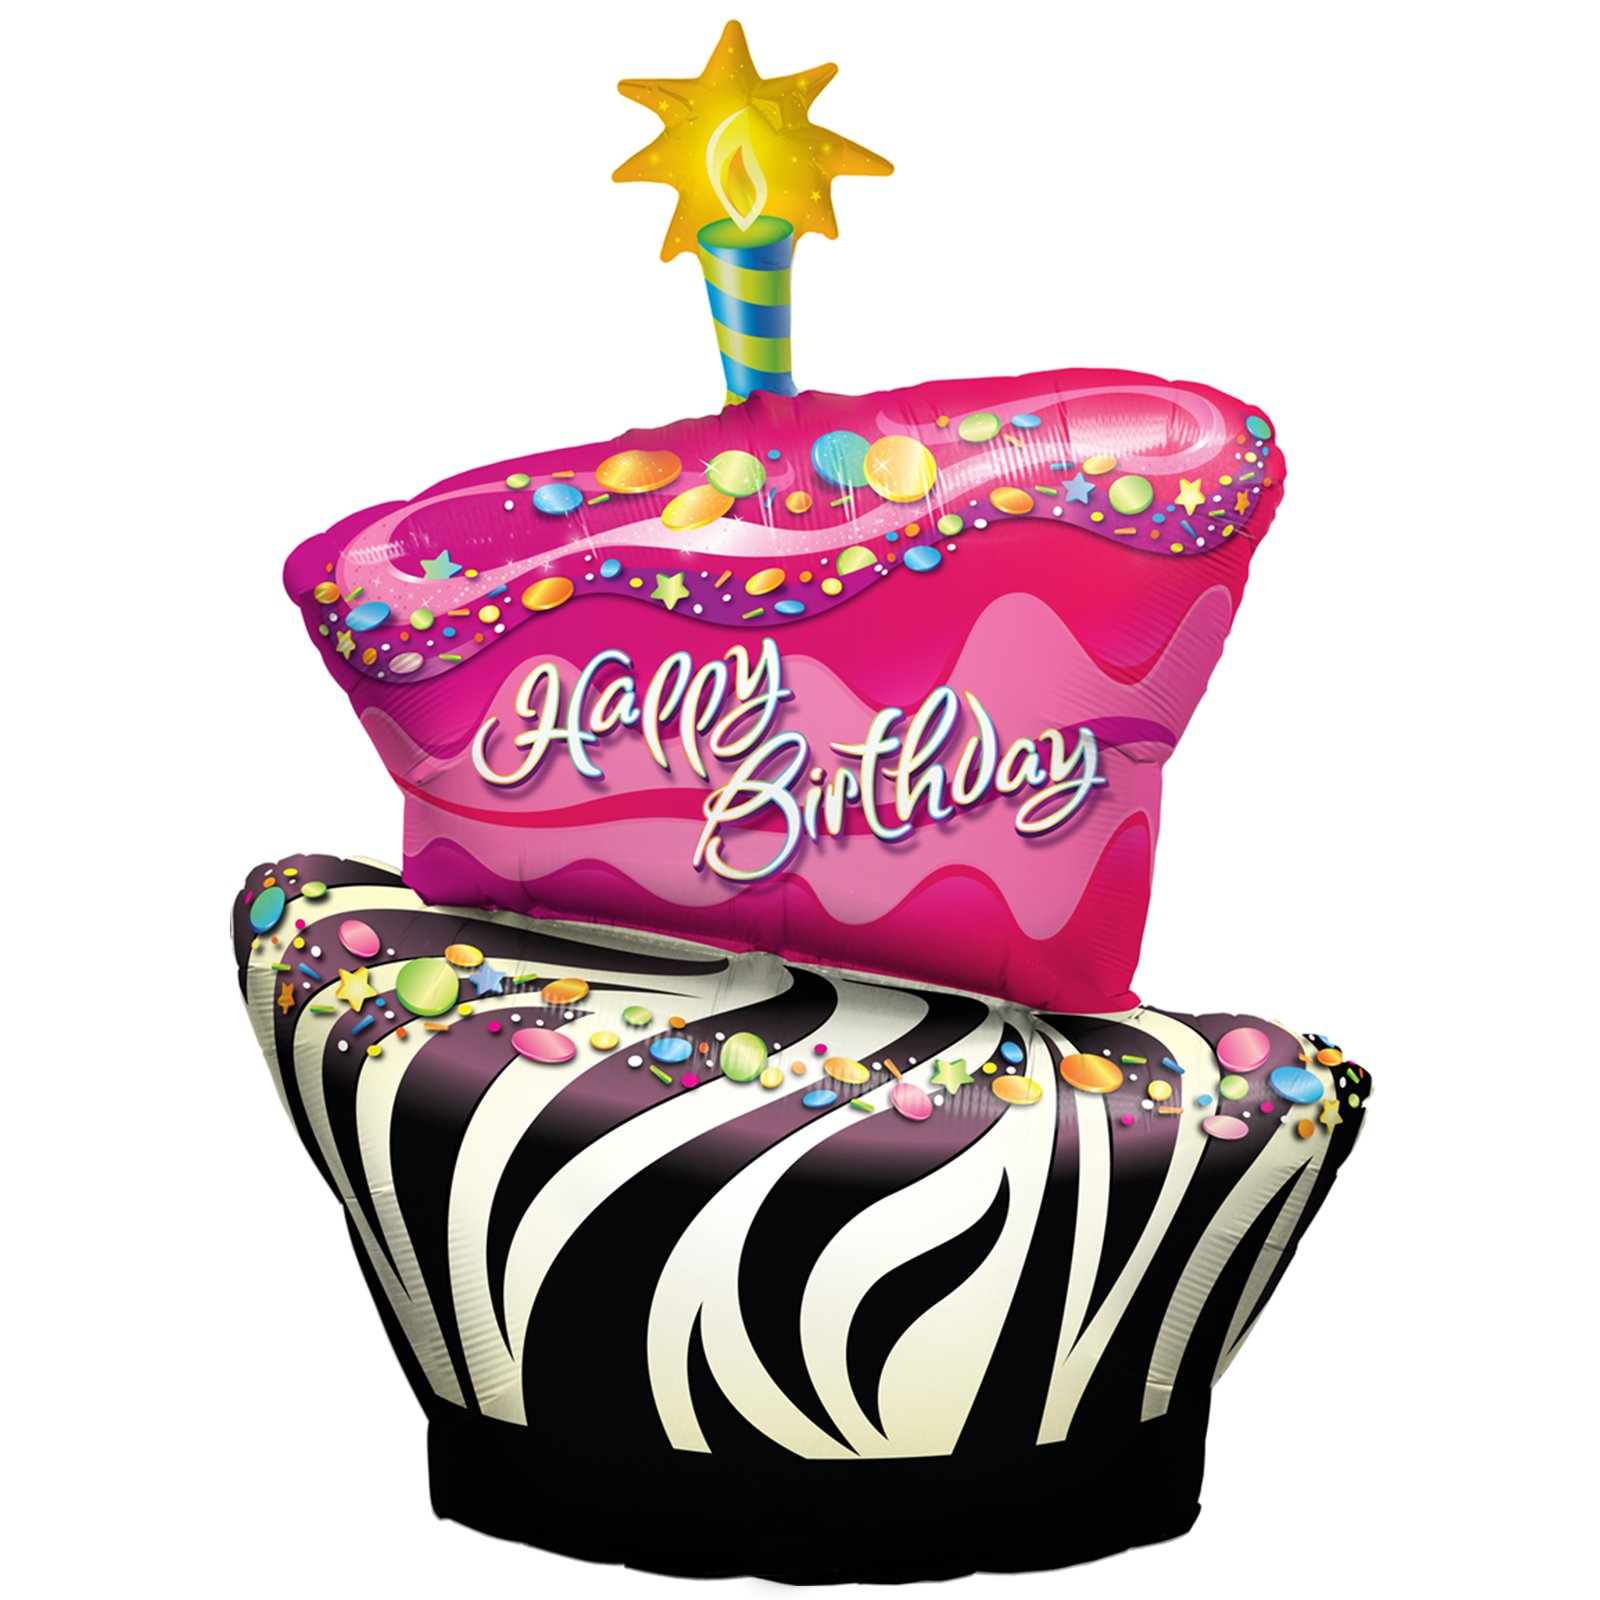 Cake And Balloons Clipart : Happy Birthday Balloons And Cake - ClipArt Best